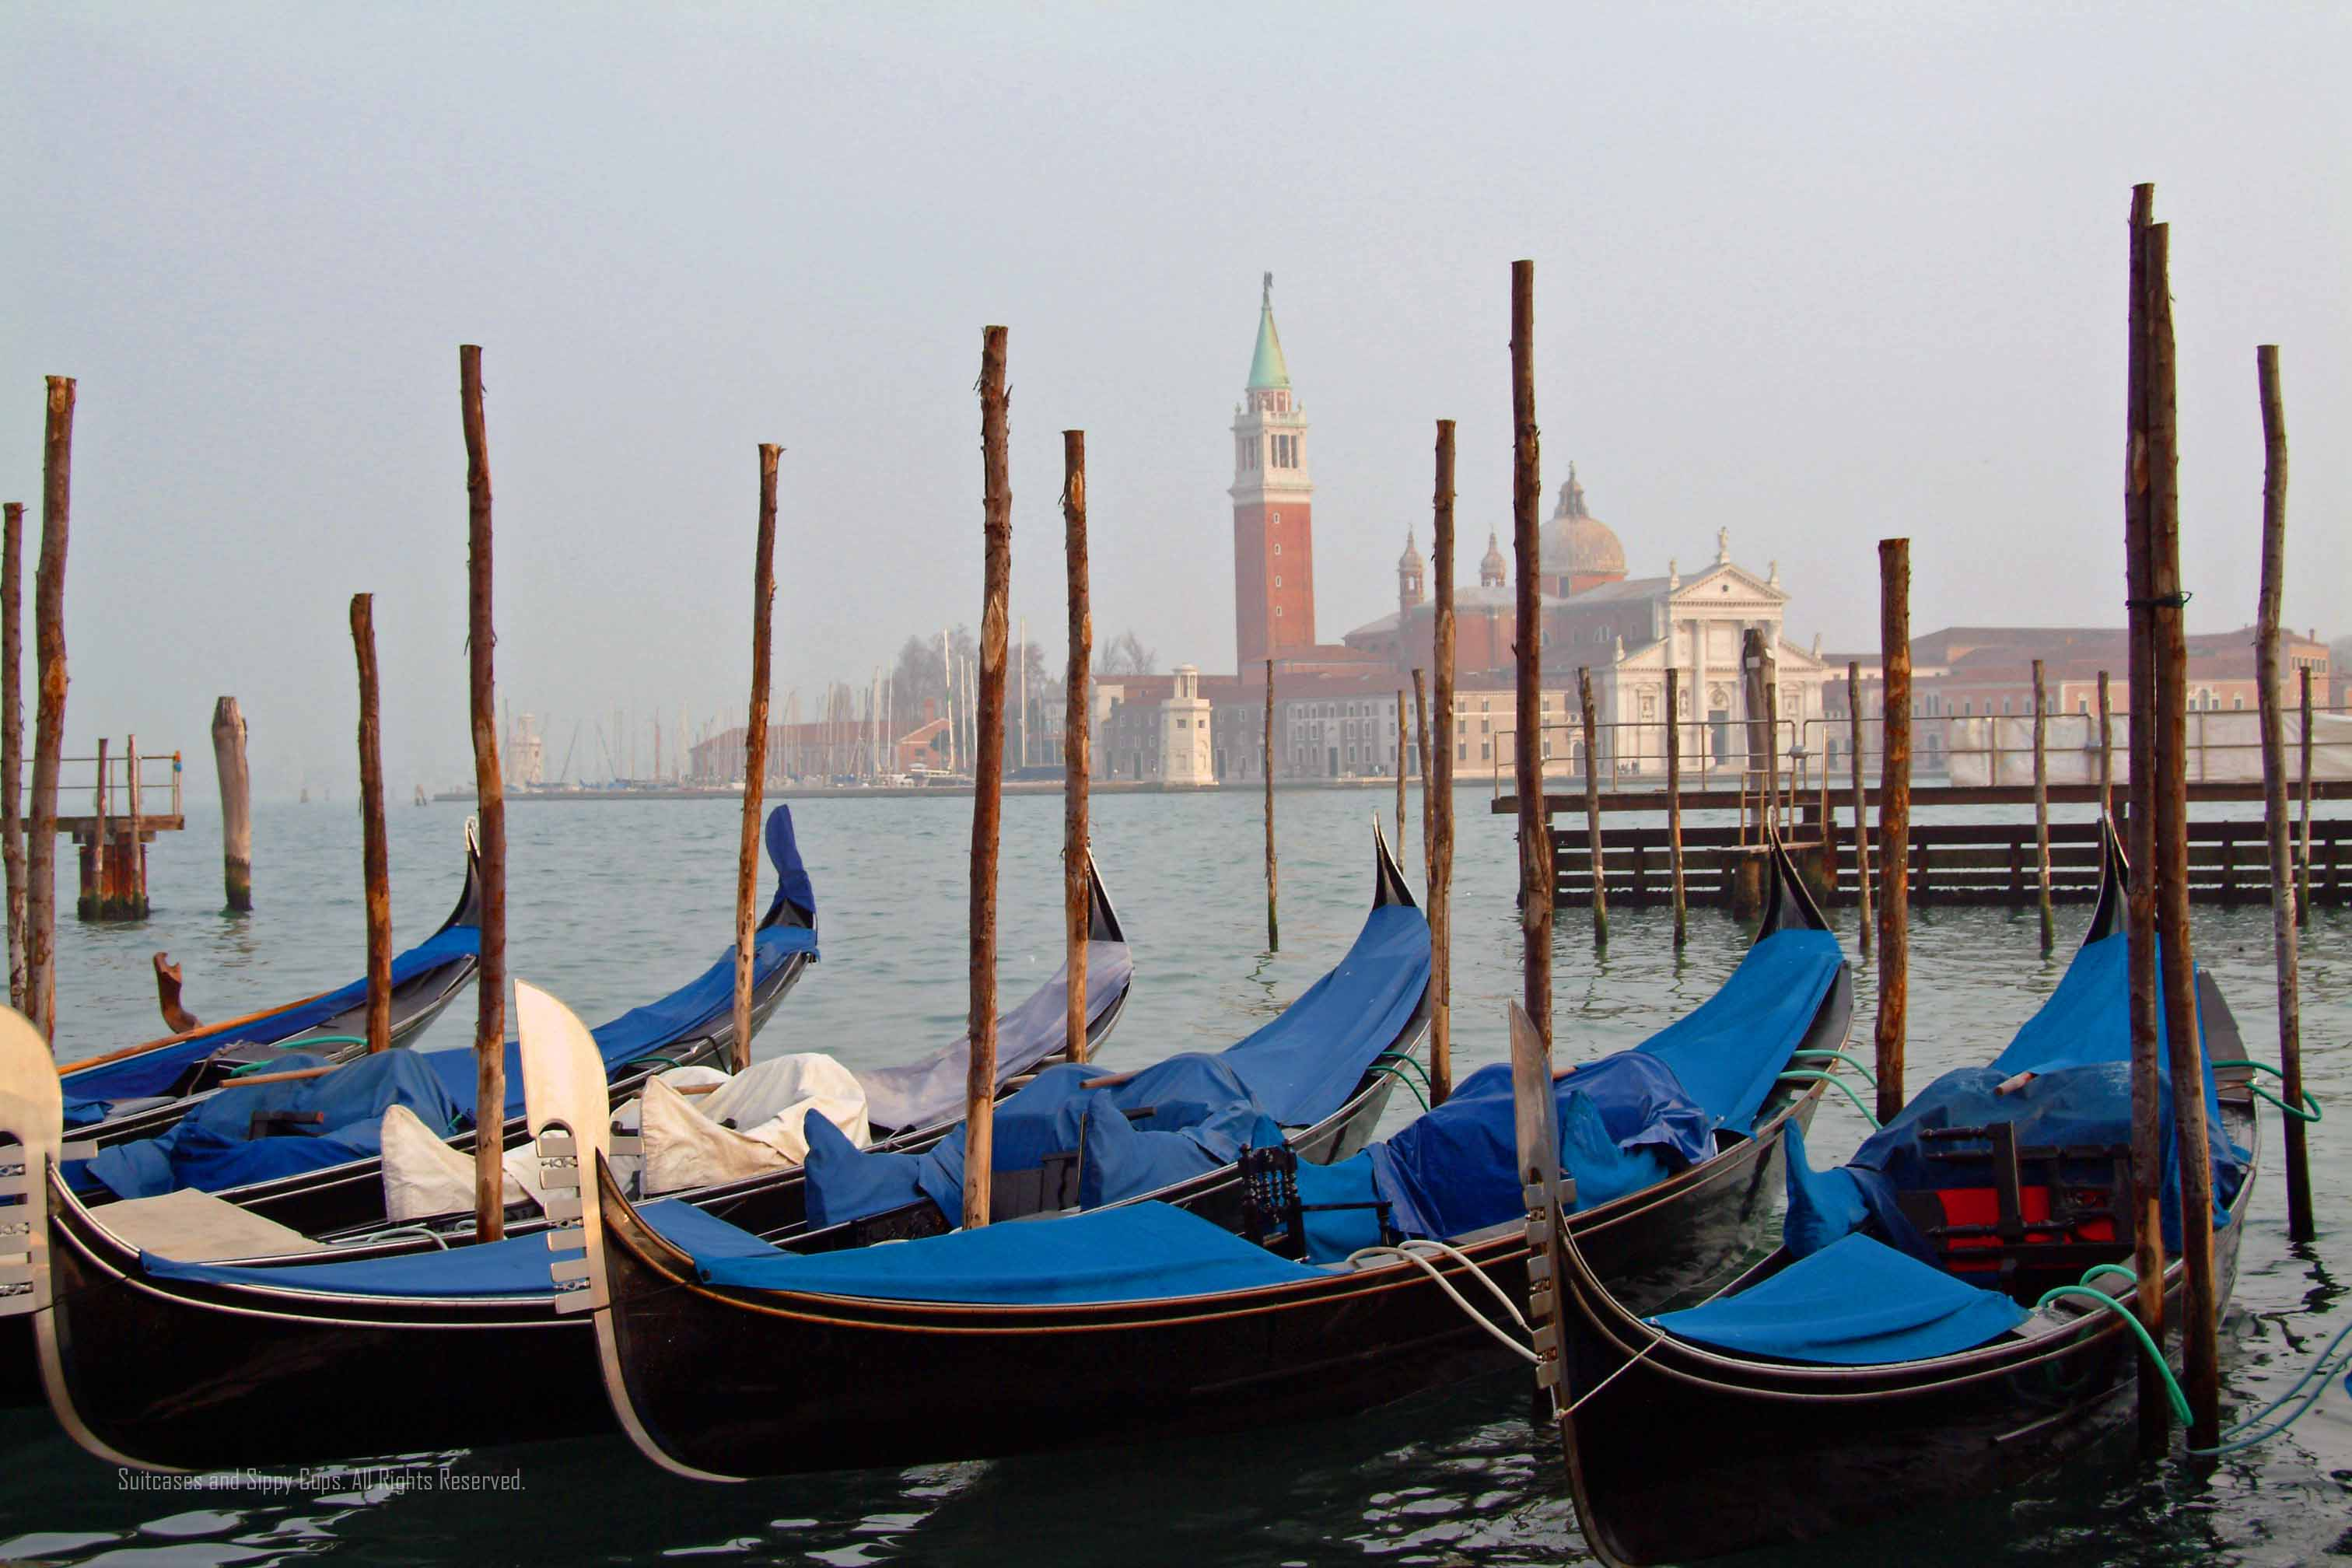 Viajes a Venecia Kids for Kids